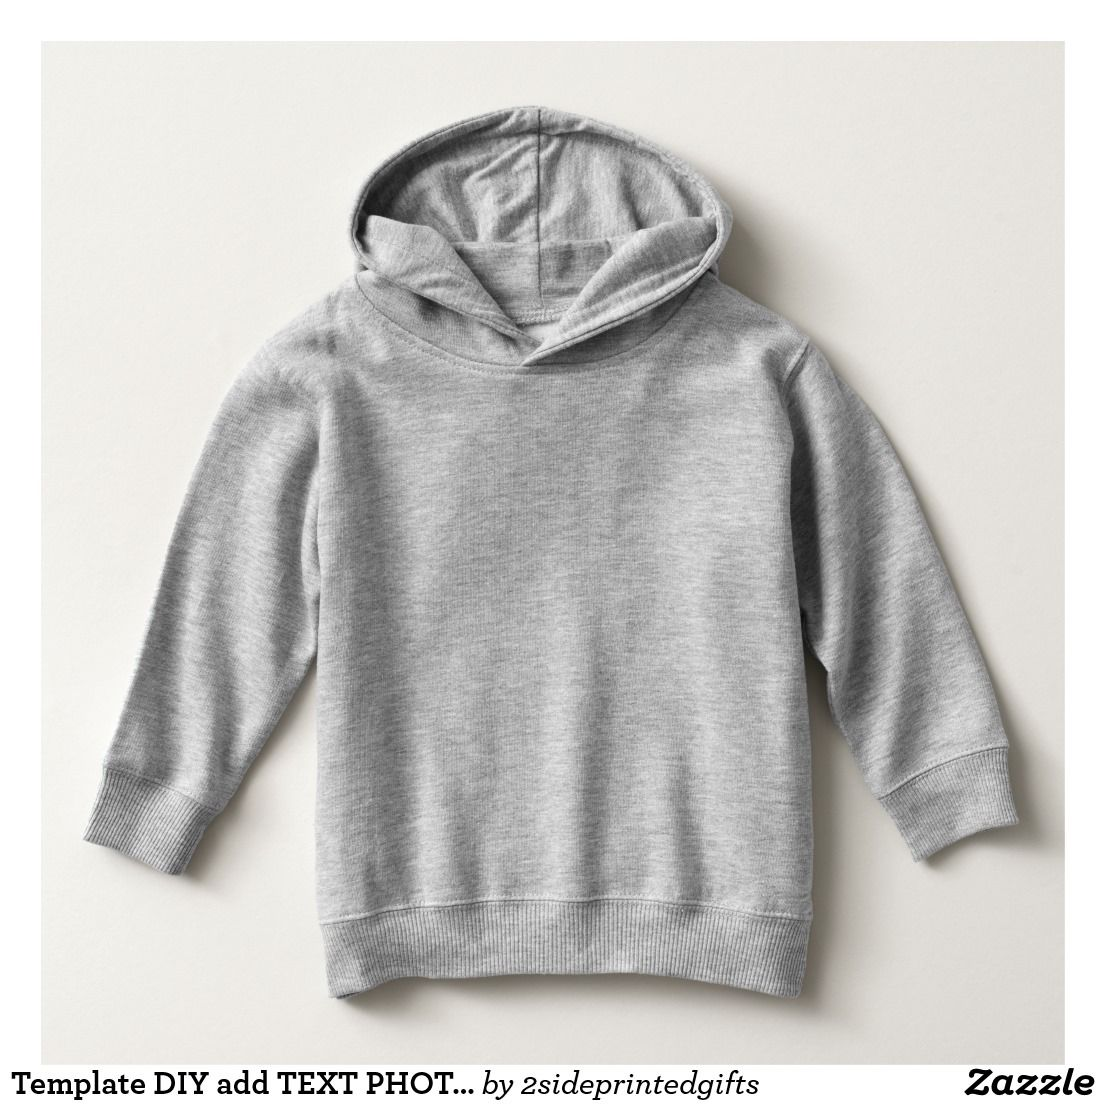 Template DIY add TEXT PHOT Toddler Pullover Hoodie | Template